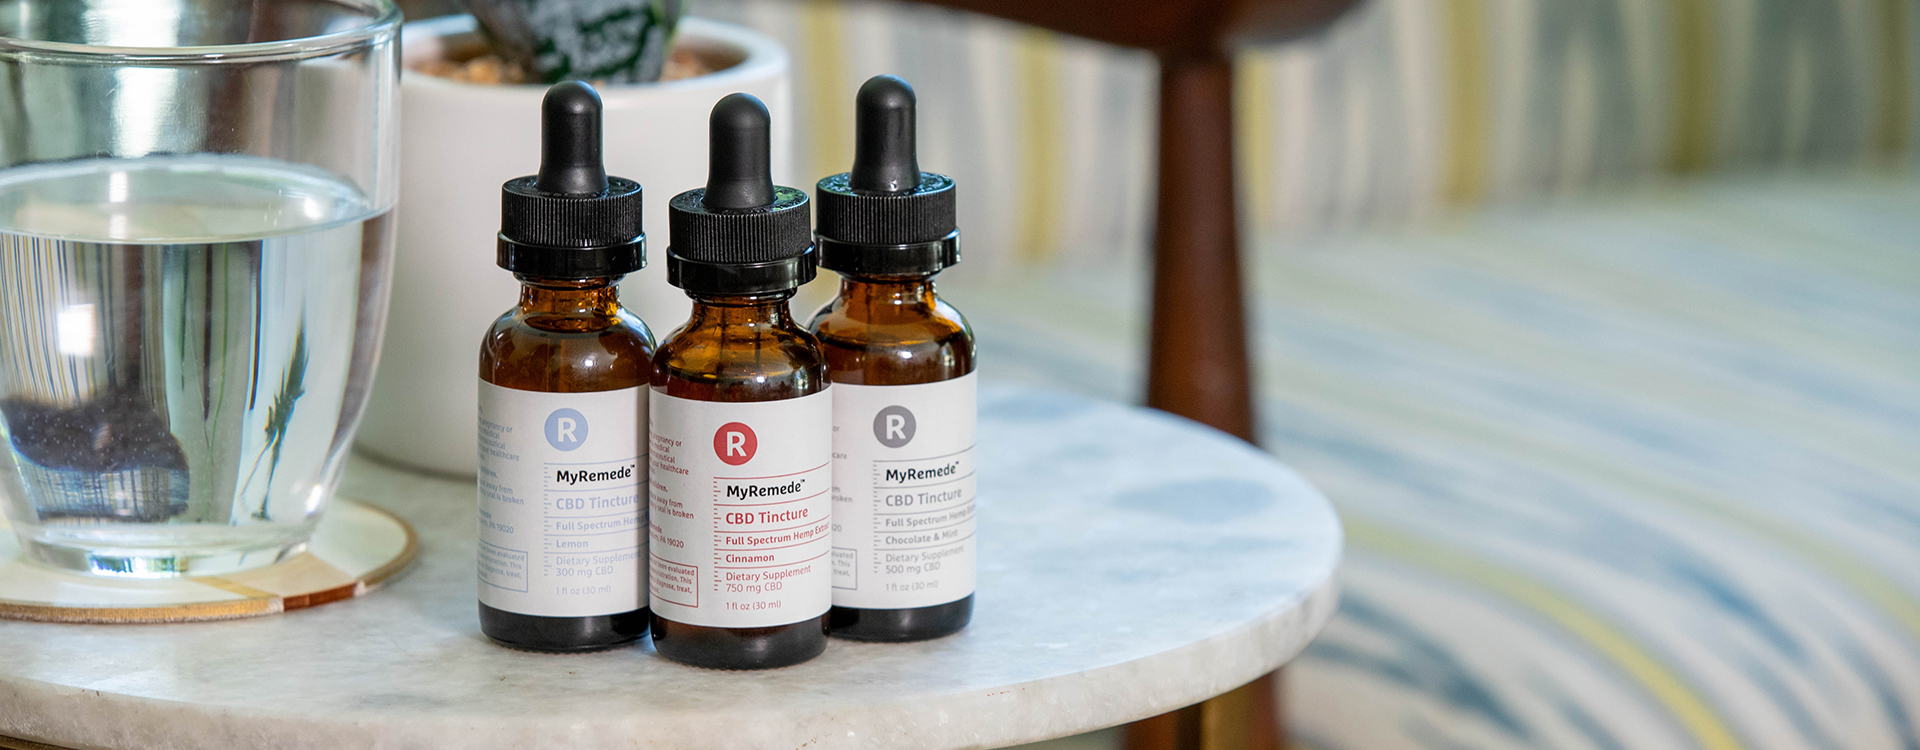 How Do You Take CBD Oil?